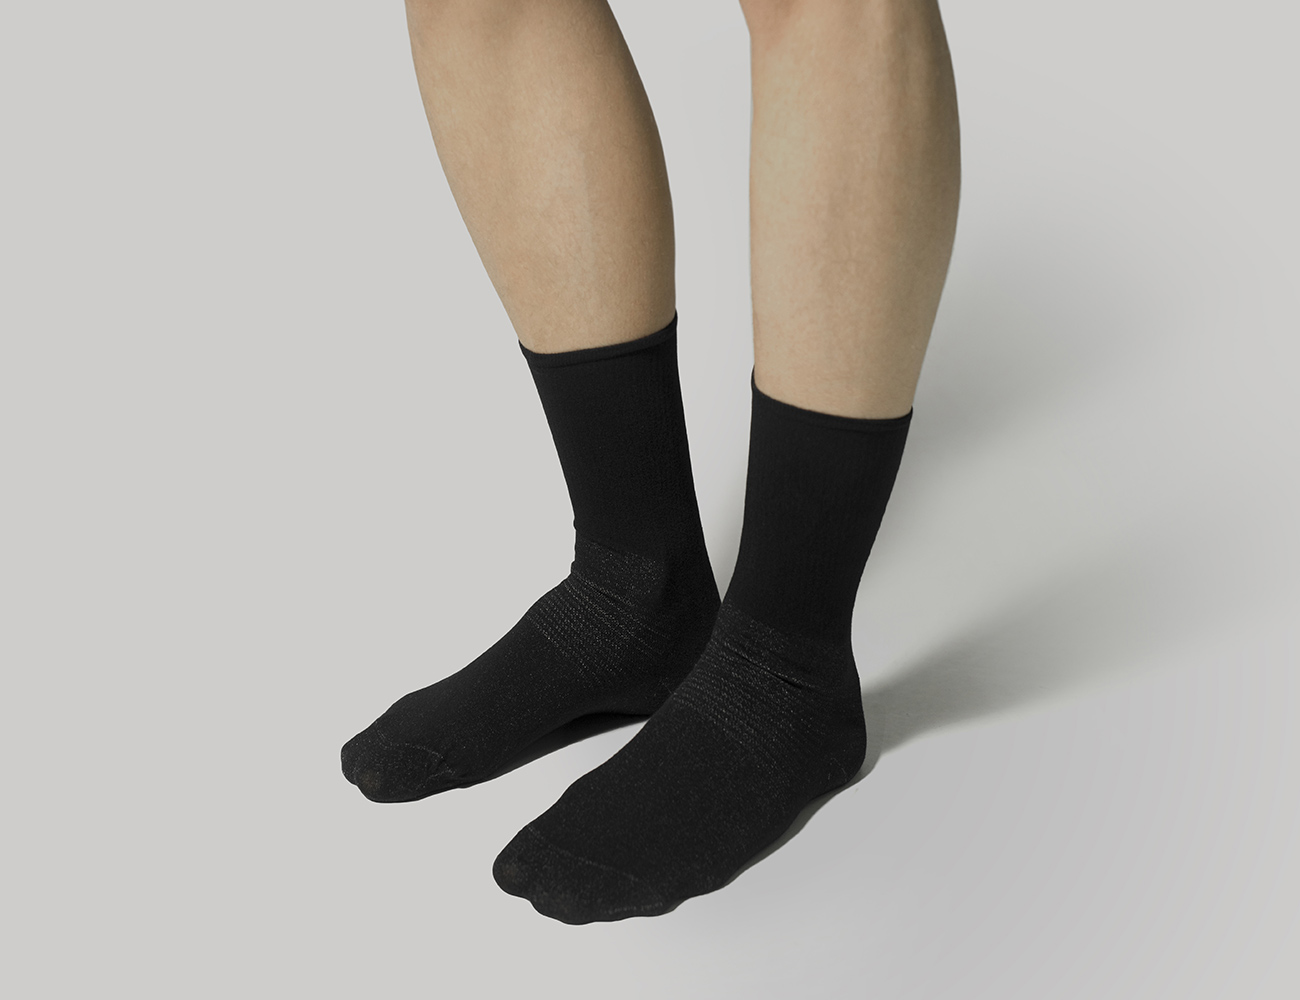 Diabetic and Sensitive Feet Socks